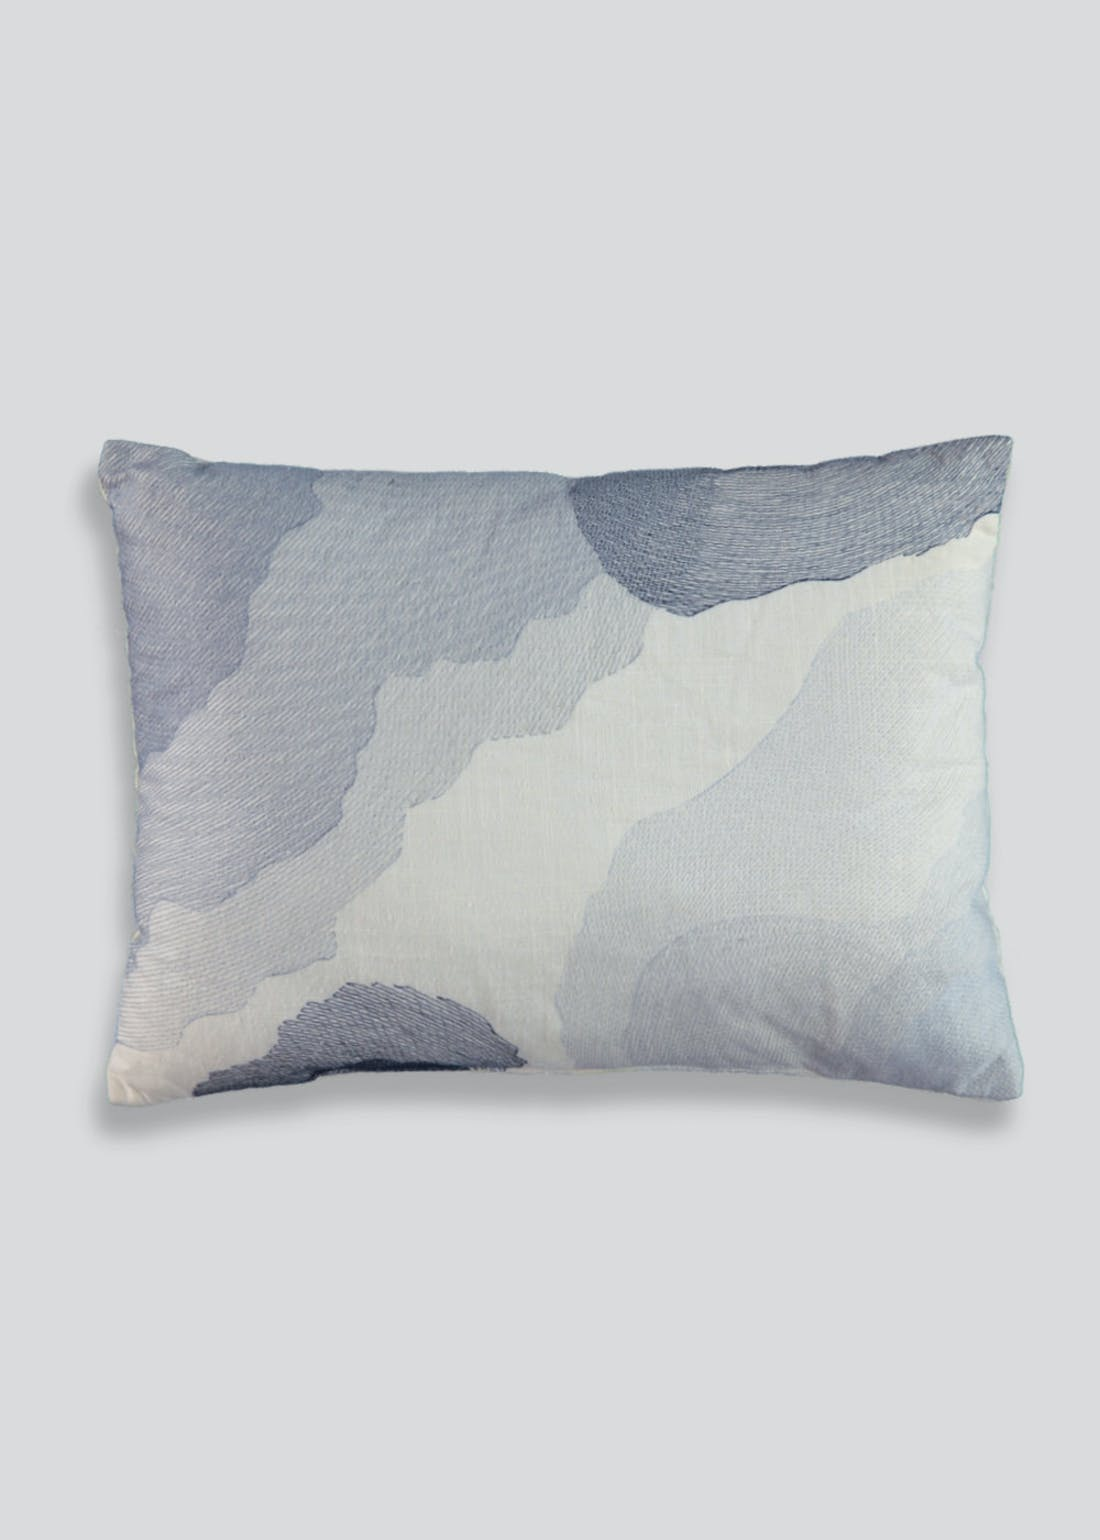 Embroidered Linen Mix Cushion (40cm x 30cm)